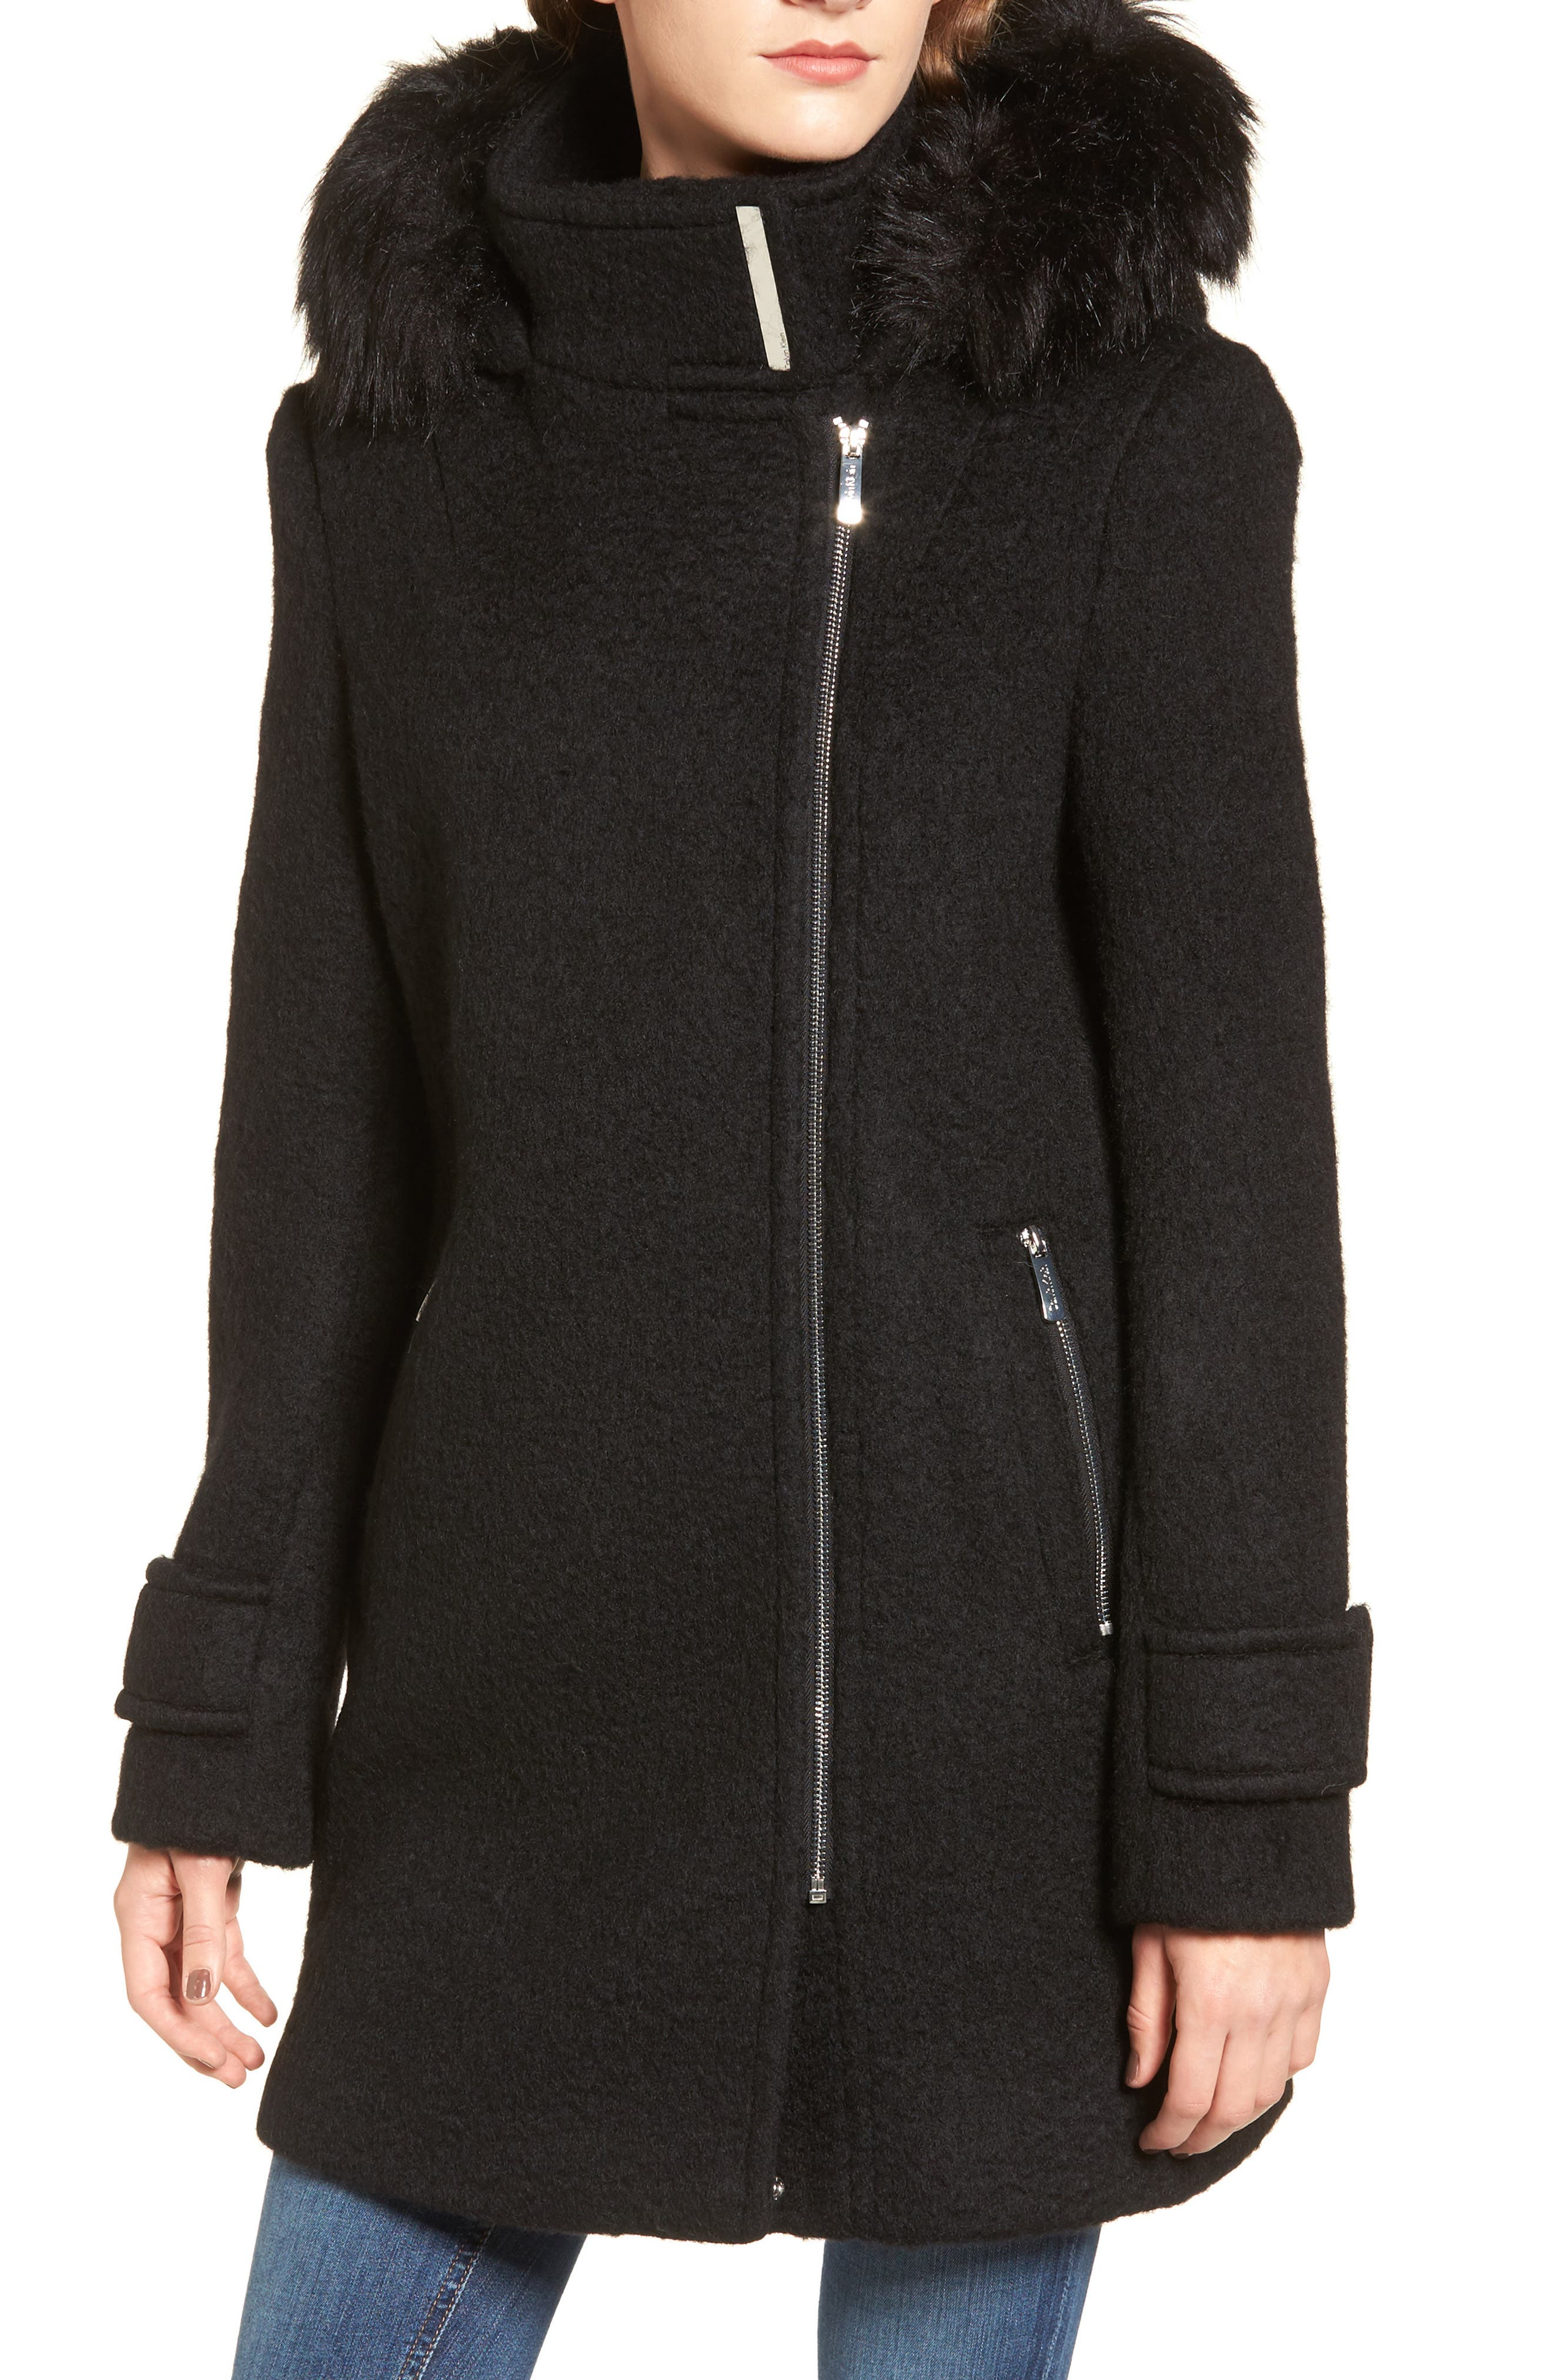 Alternate Image 4  - Calvin Klein Hooded Wool Blend Jacket with Faux Fur Trim